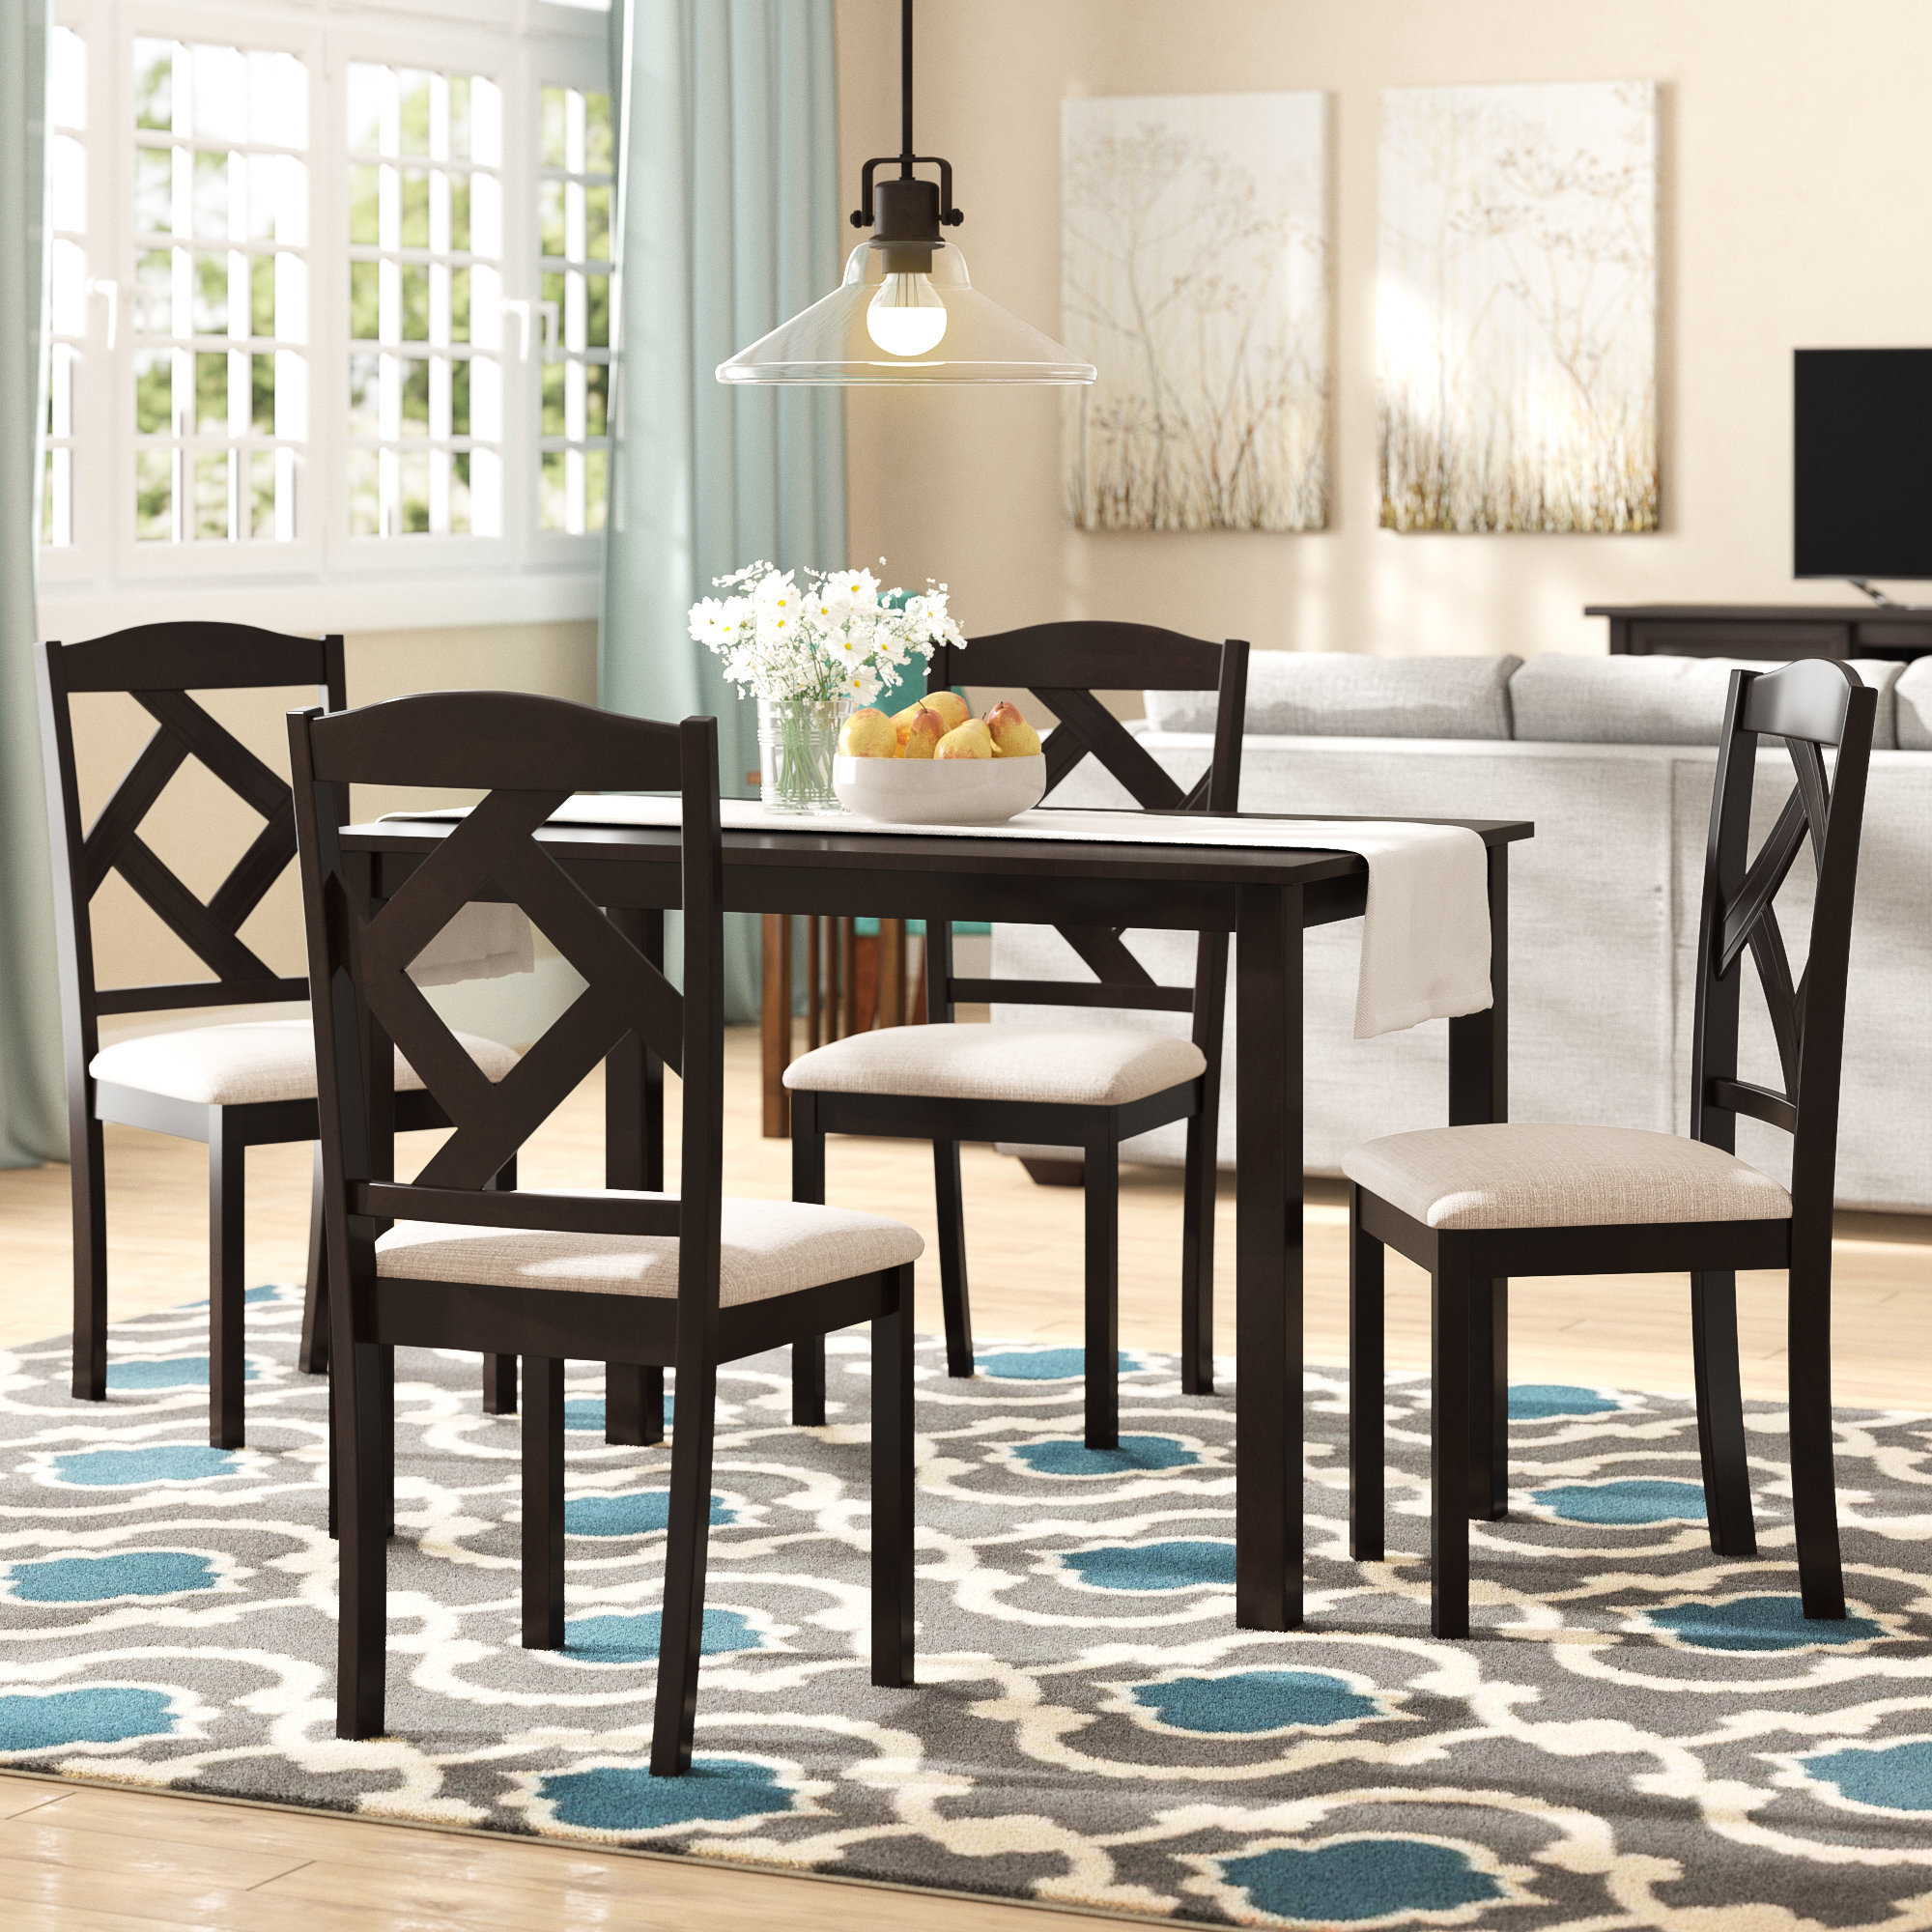 Goosman Modern And Contemporary 5 Piece Breakfast Nook Dining Set Intended For Latest Ganya 5 Piece Dining Sets (Photo 16 of 20)